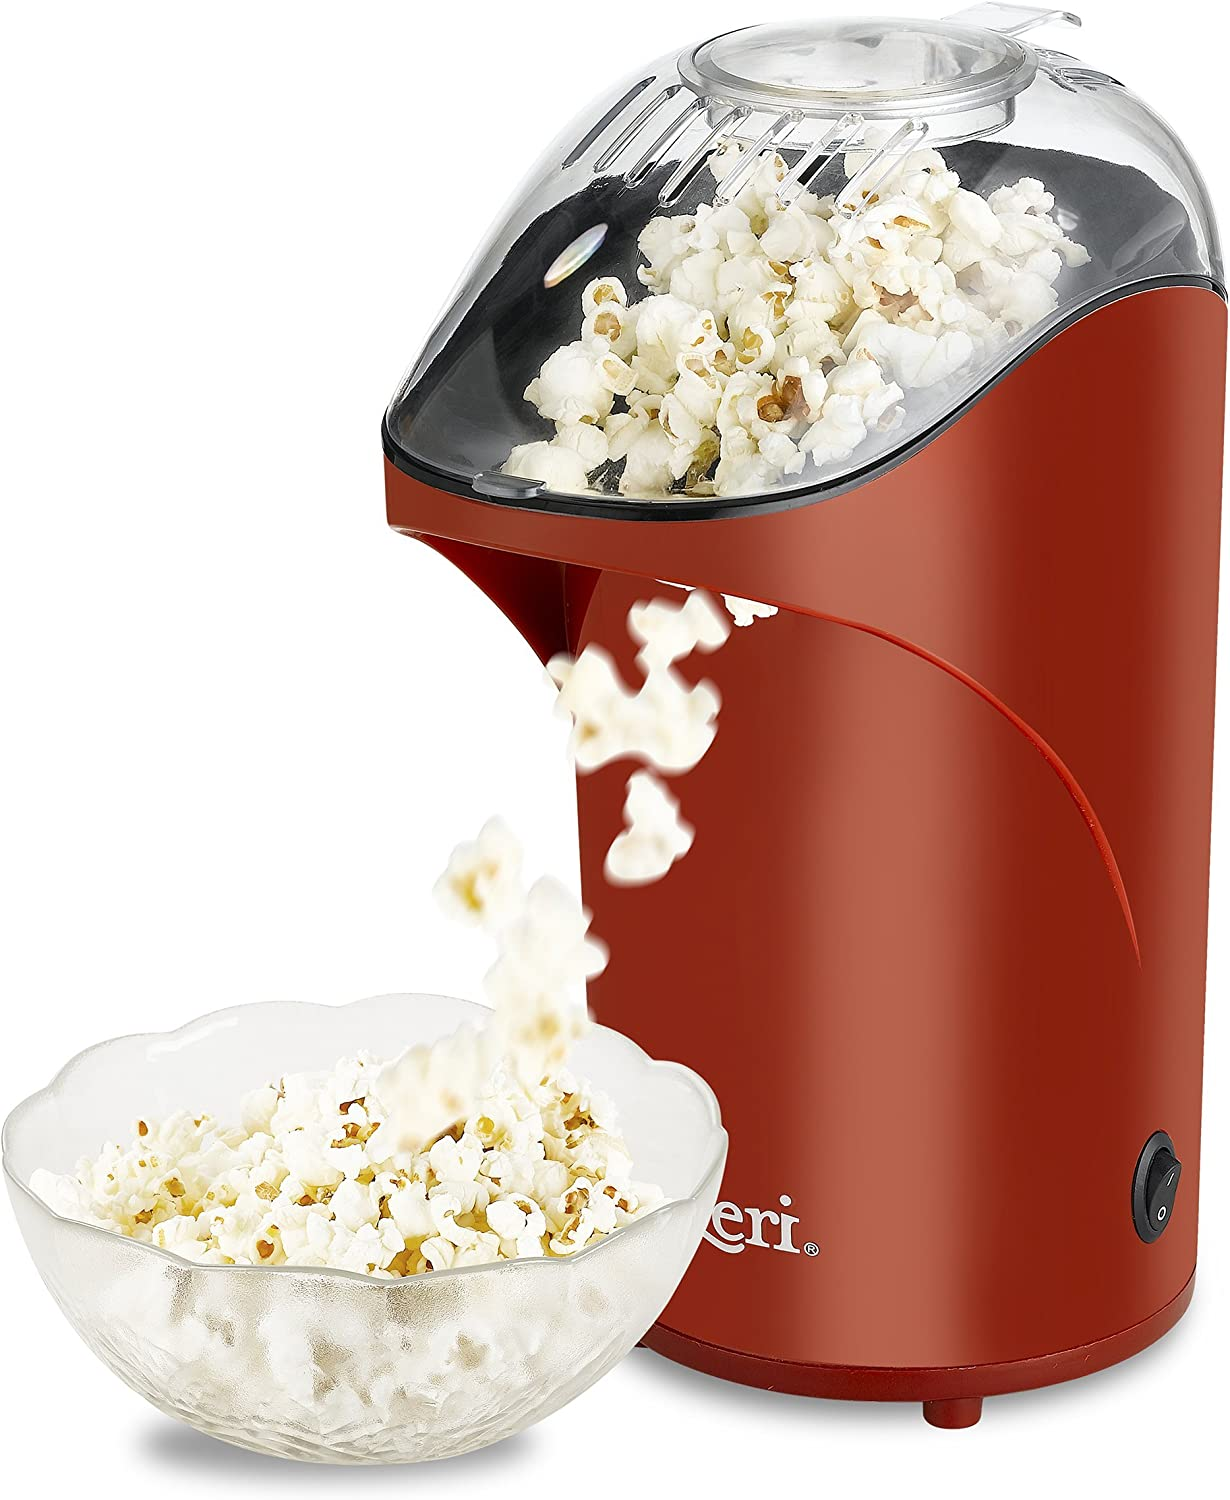 Electric Popcorn Maker Household Automatic Popcorn Machine Air Blowing Popper BG